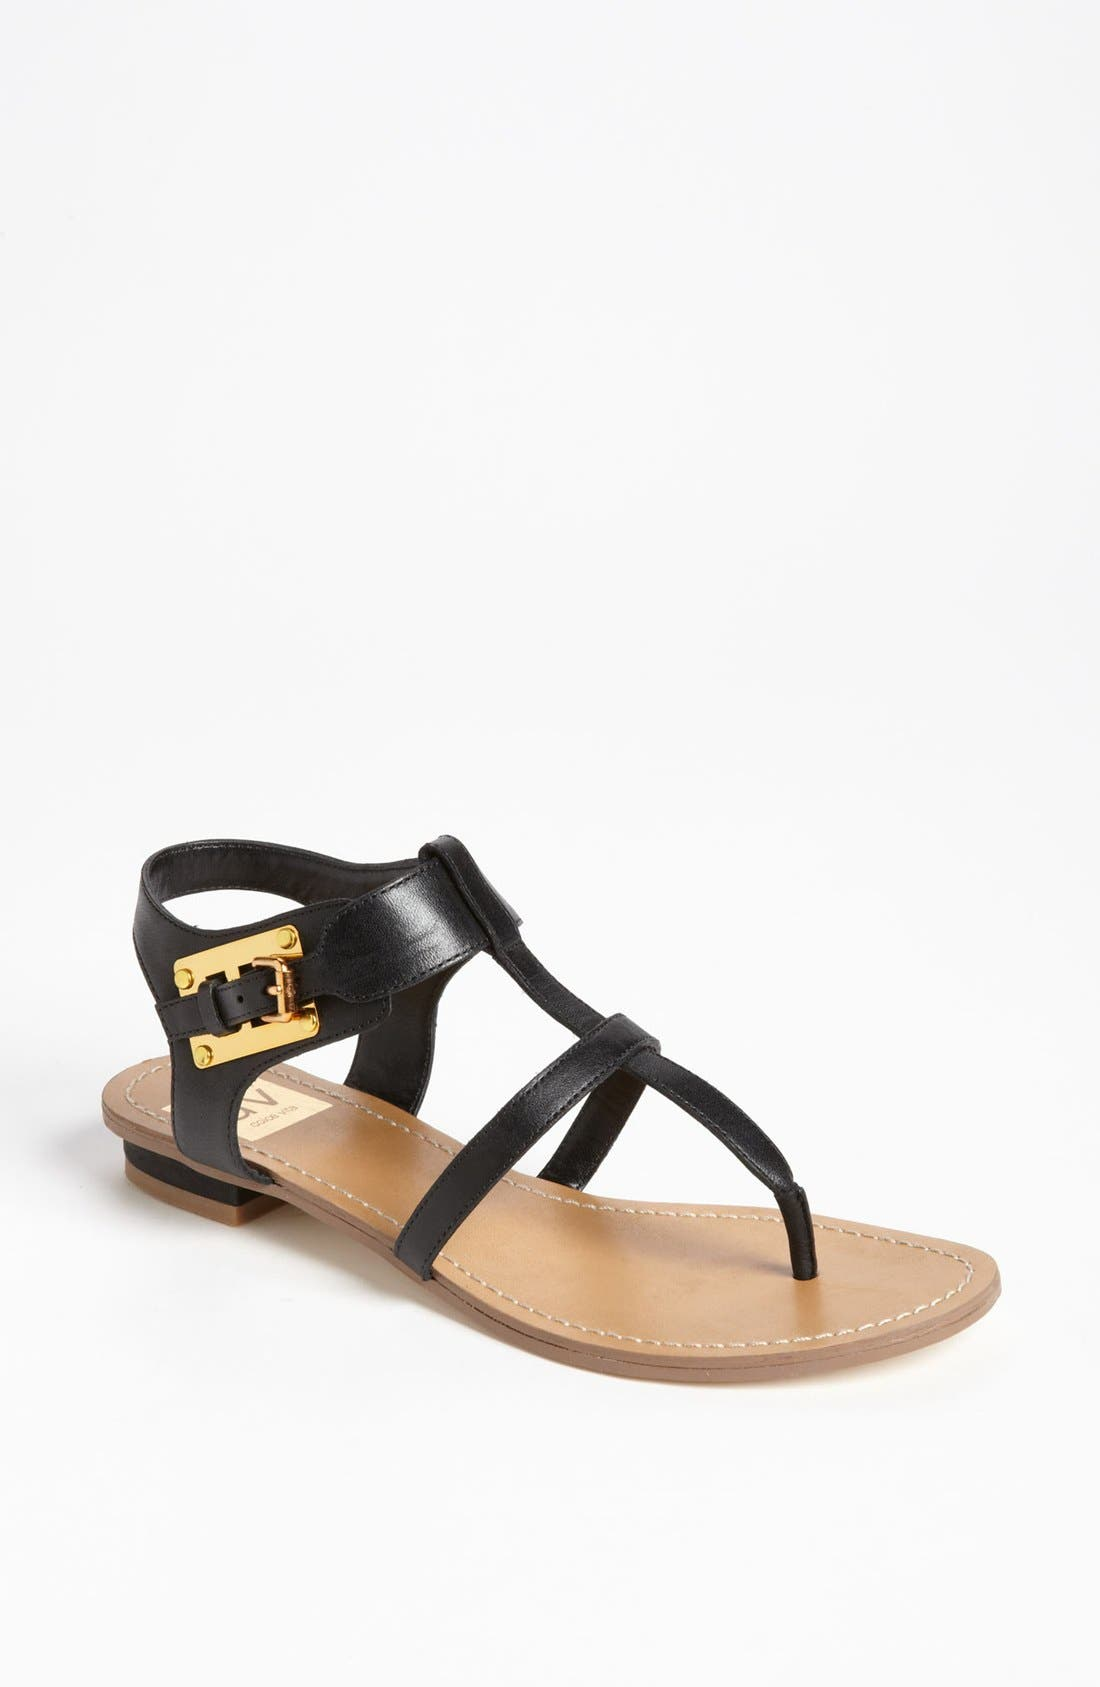 DV by Dolce Vita 'Hani' Sandal,                             Main thumbnail 1, color,                             Black